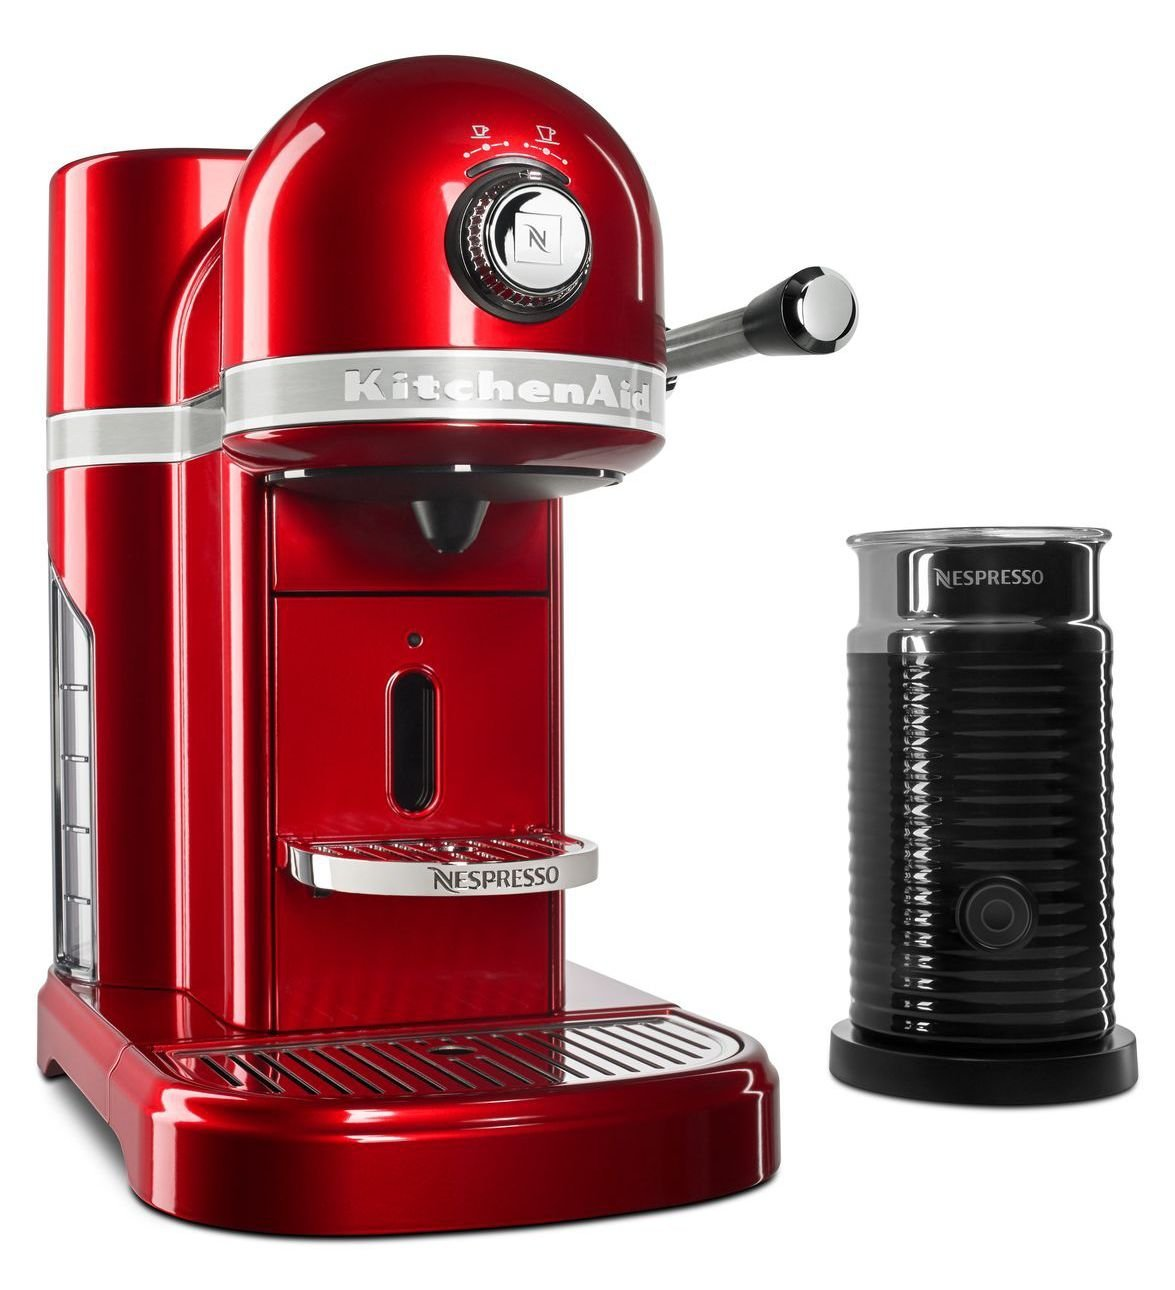 KitchenAid KES0504CA0 Candy Apple Red Nespresso Espresso Maker with Aeroccino Milk Frother by KitchenAid (Image #1)